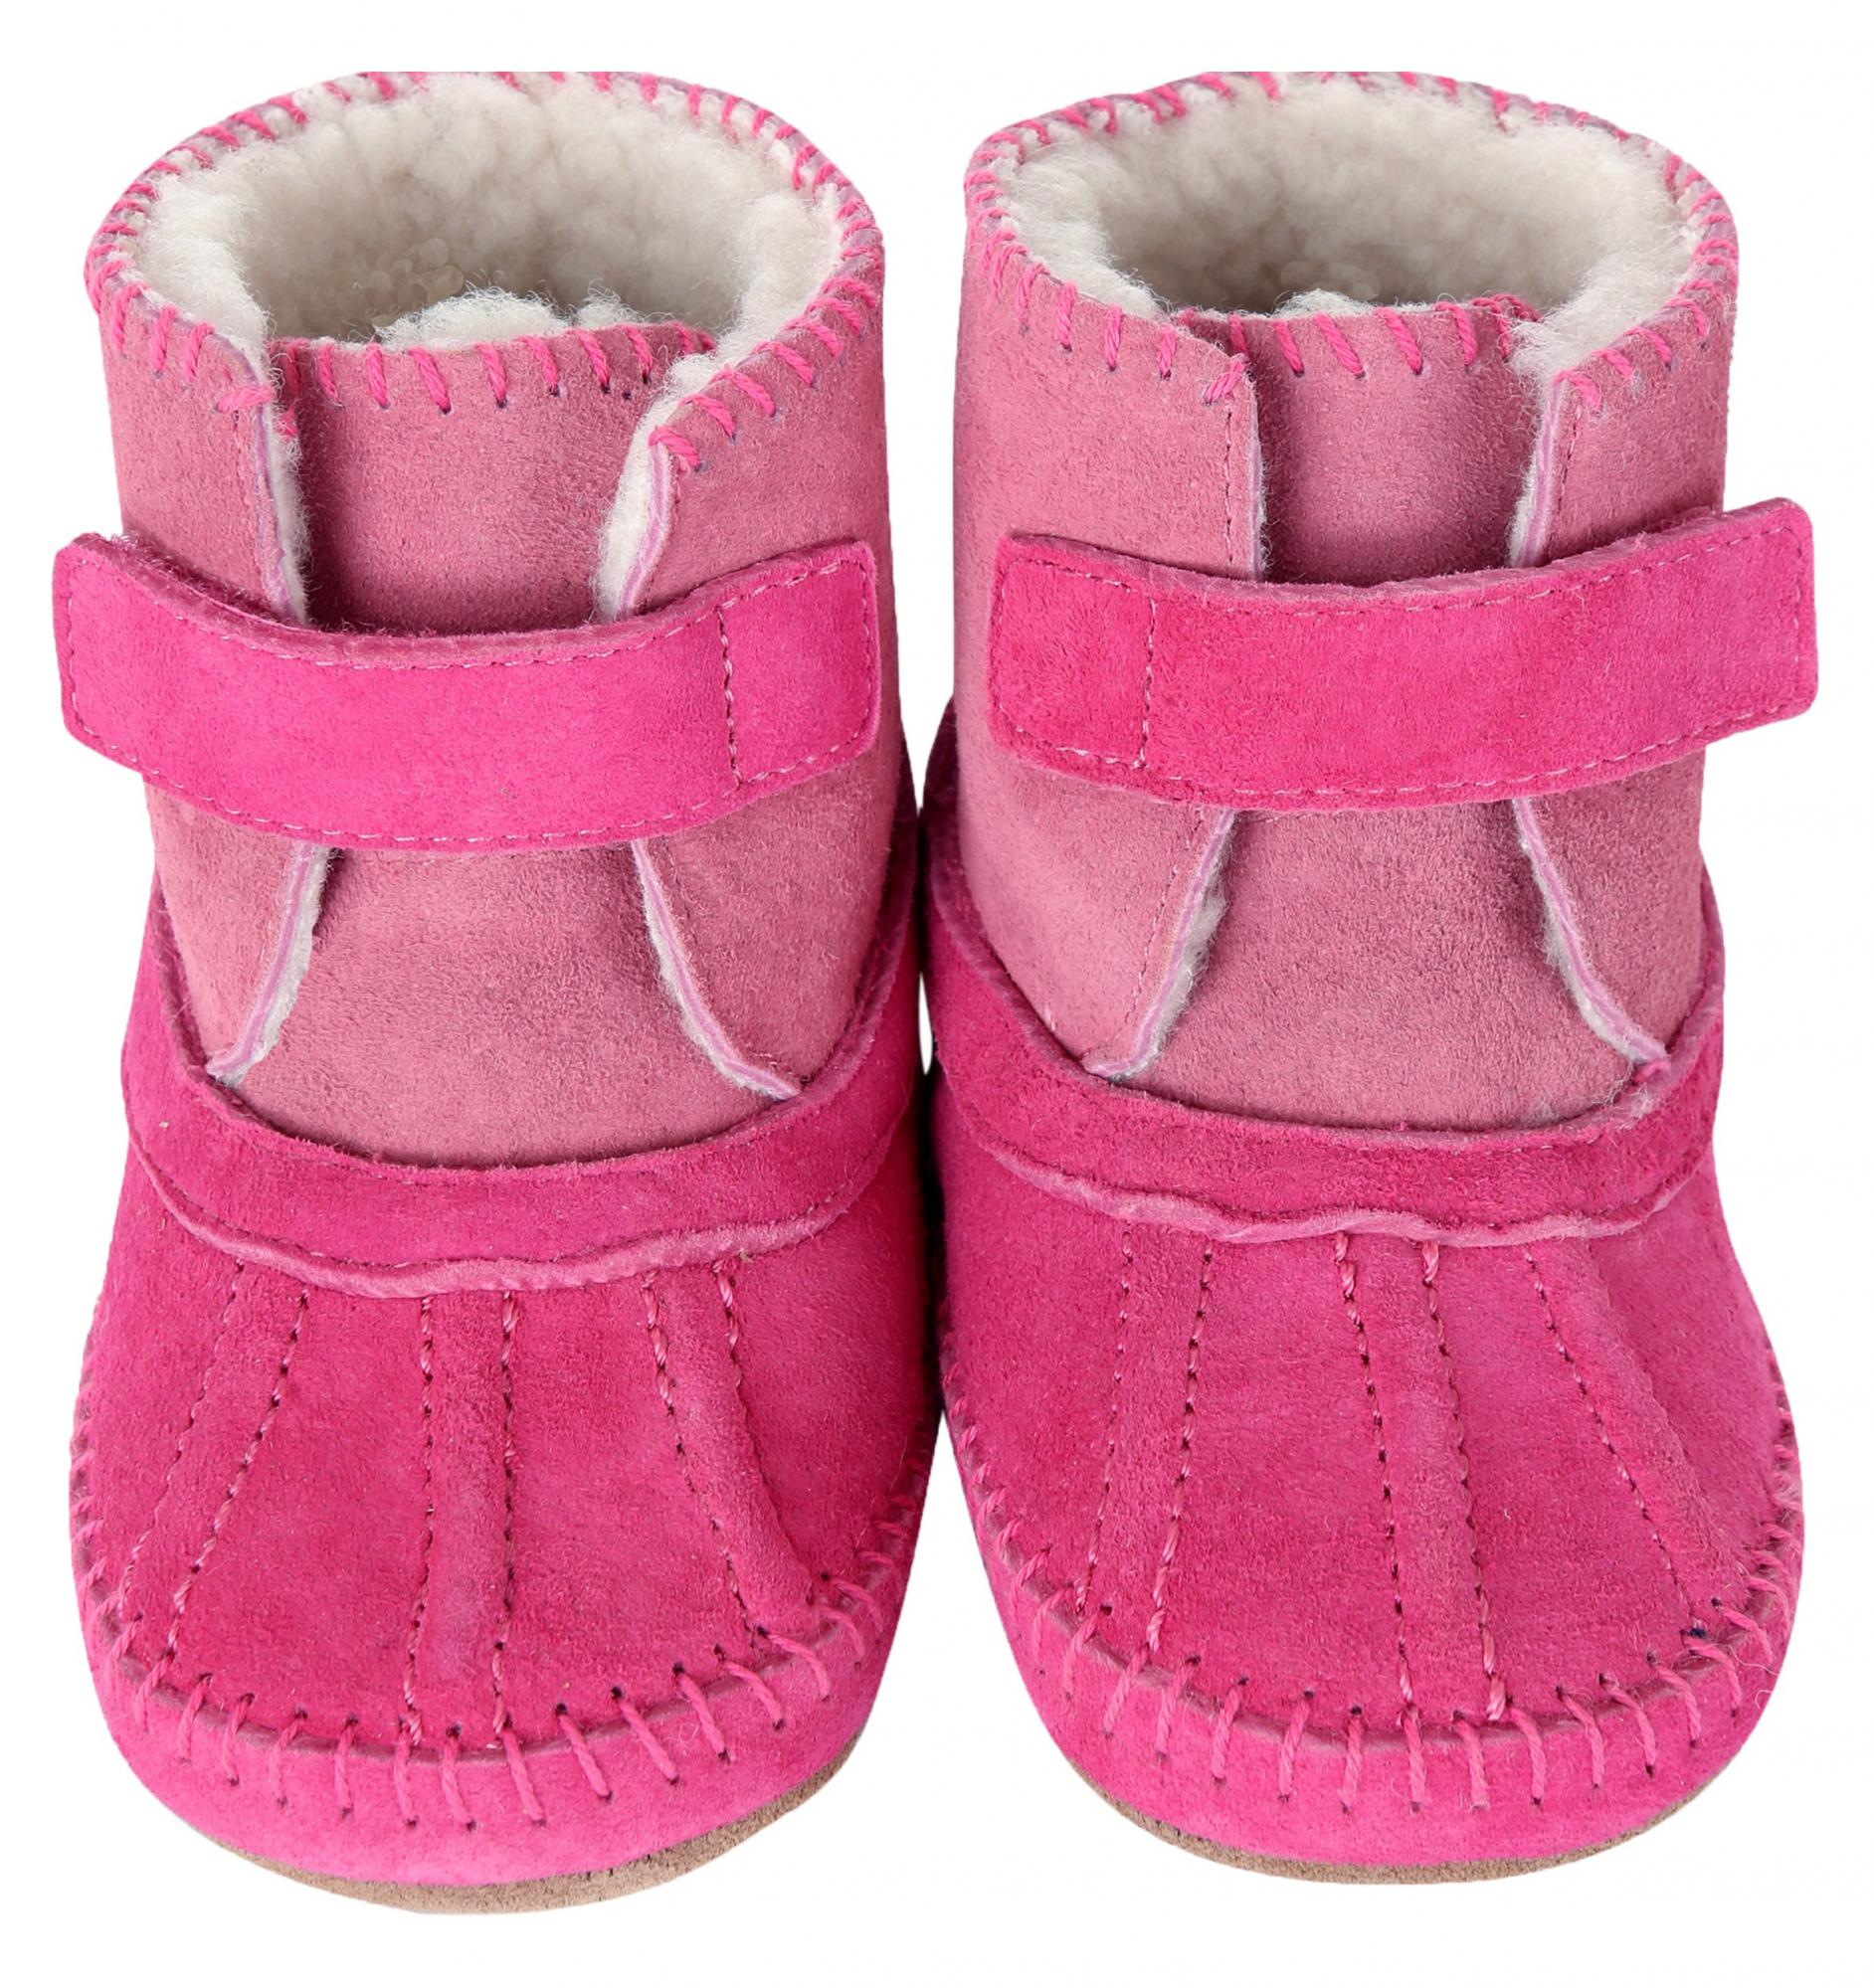 robeez-soft-sole-baby-shoes-cozy-bootie-pink.jpg